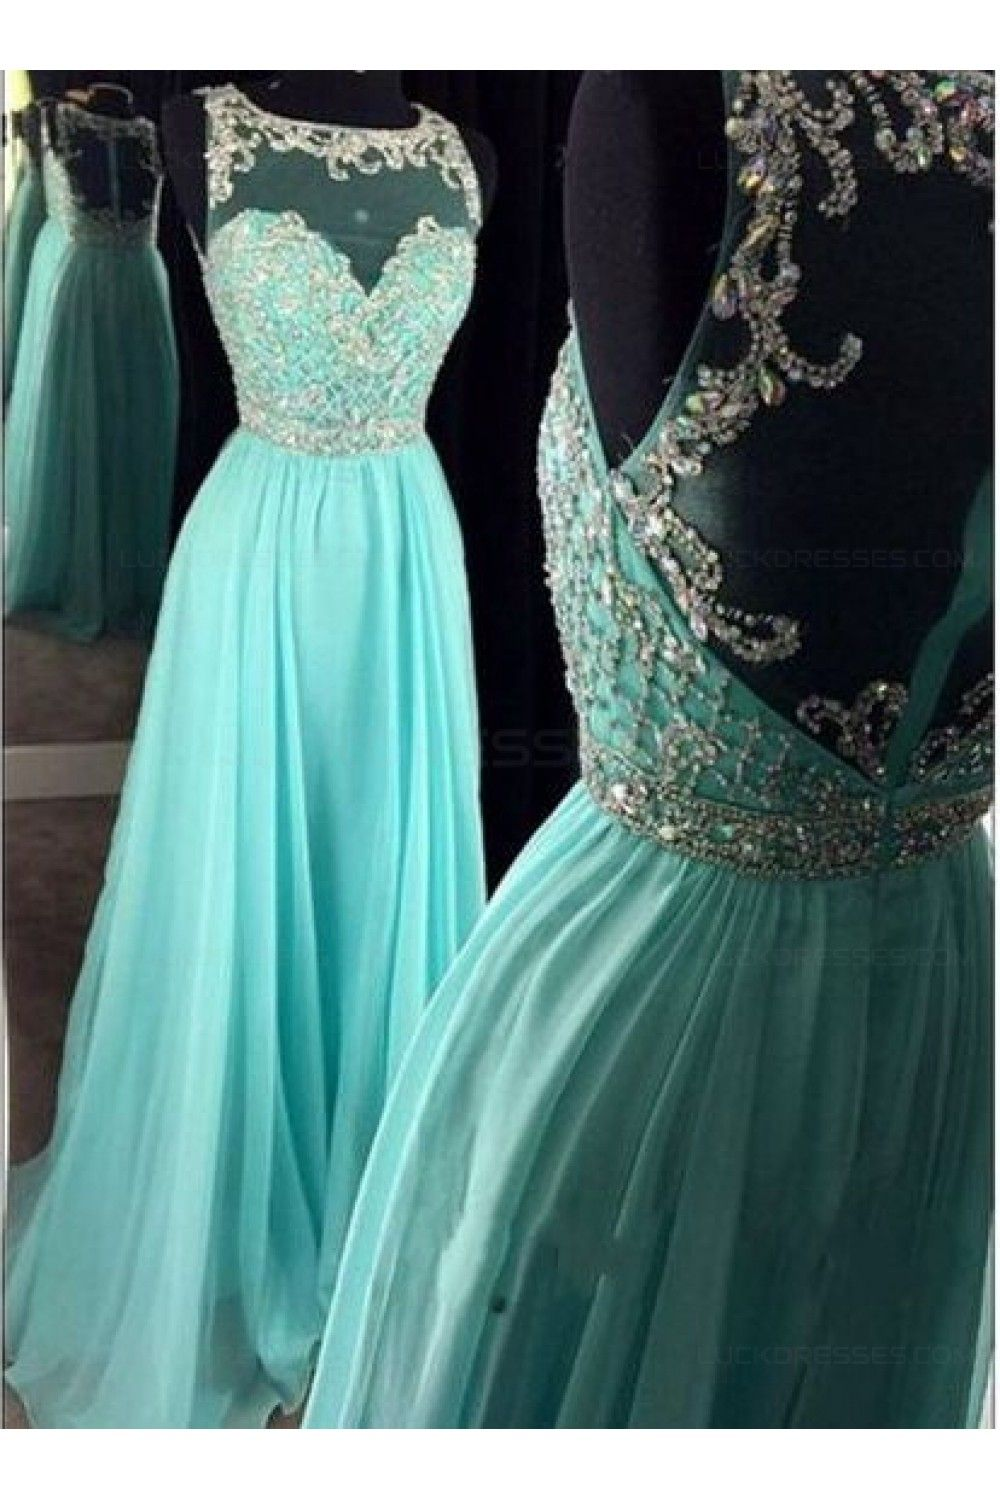 Beaded illusion neckline long blue prom dresses party evening gowns